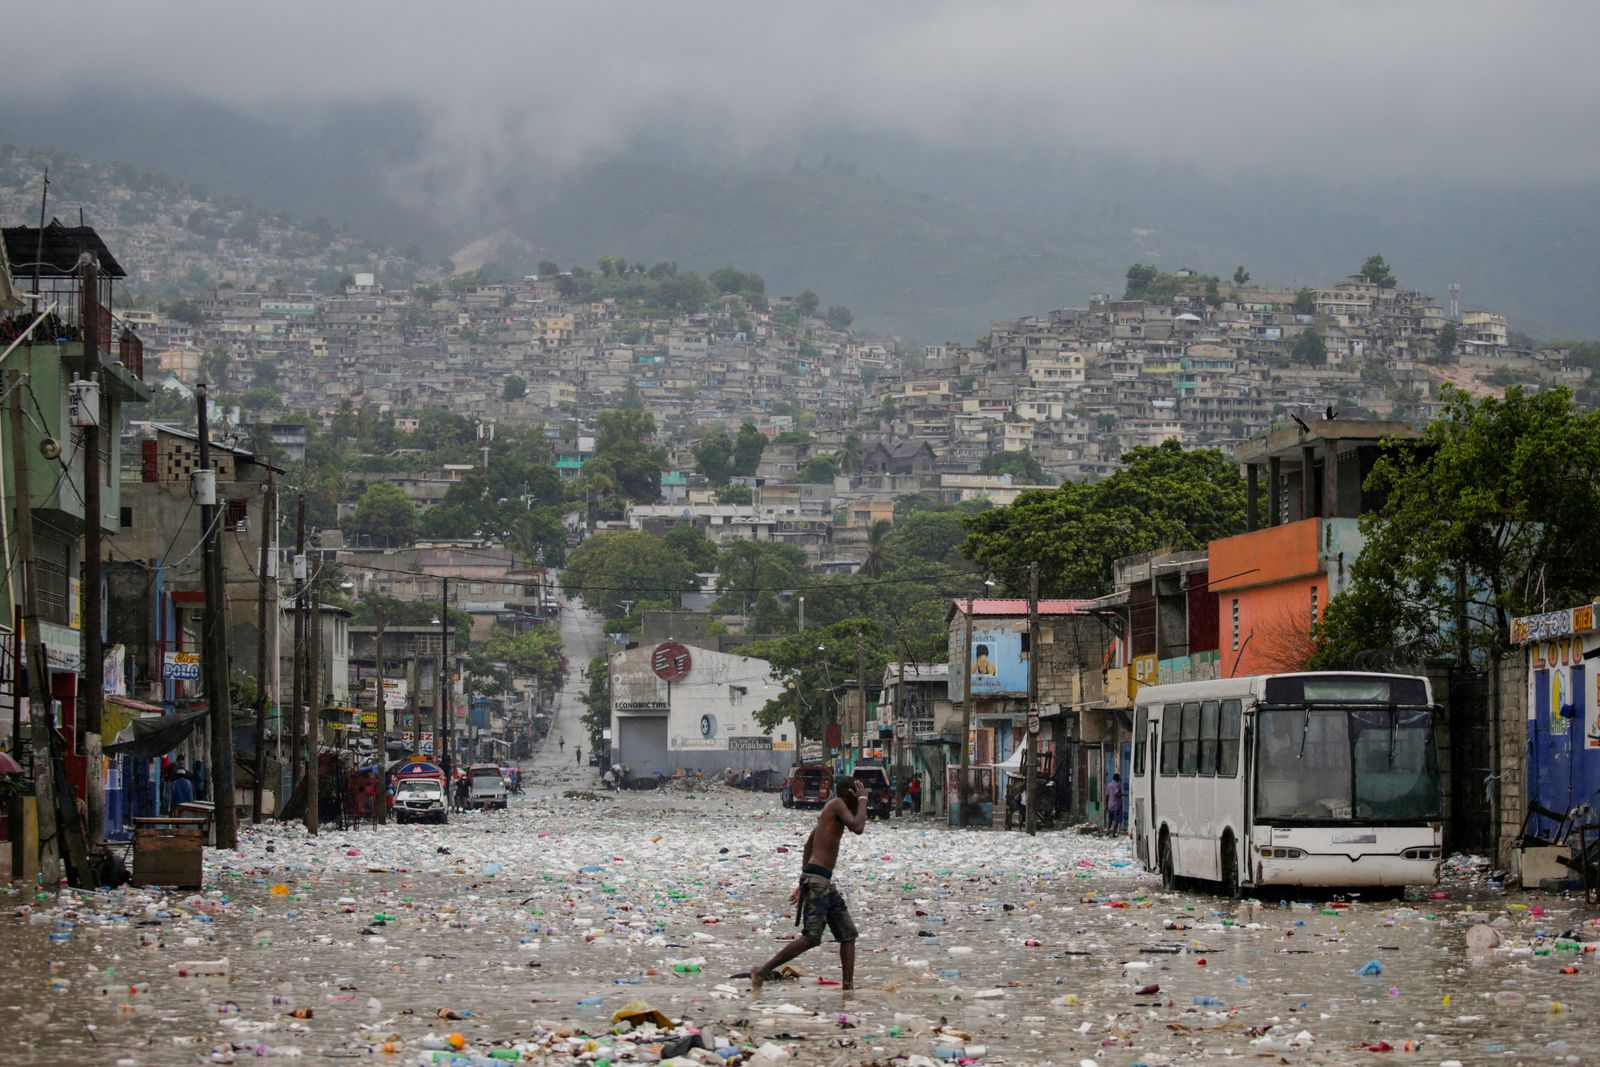 A man walks in a flooded street during the passage of Tropical Storm Laura, in Port-au-Prince